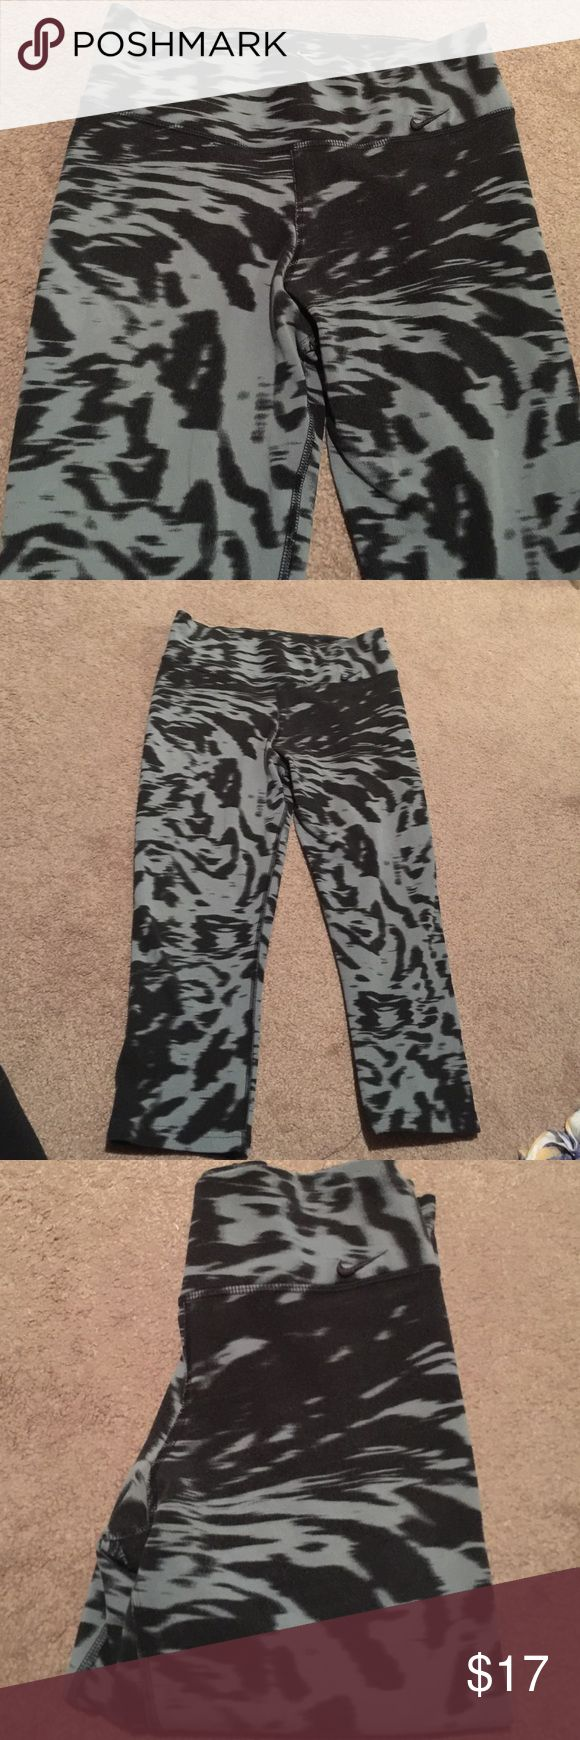 Nike leopard dry fit Capri . Size small Nike dry Fit workout Capri.  No stains. Grey and black. Very comfortable ! Nike Pants Track Pants & Joggers